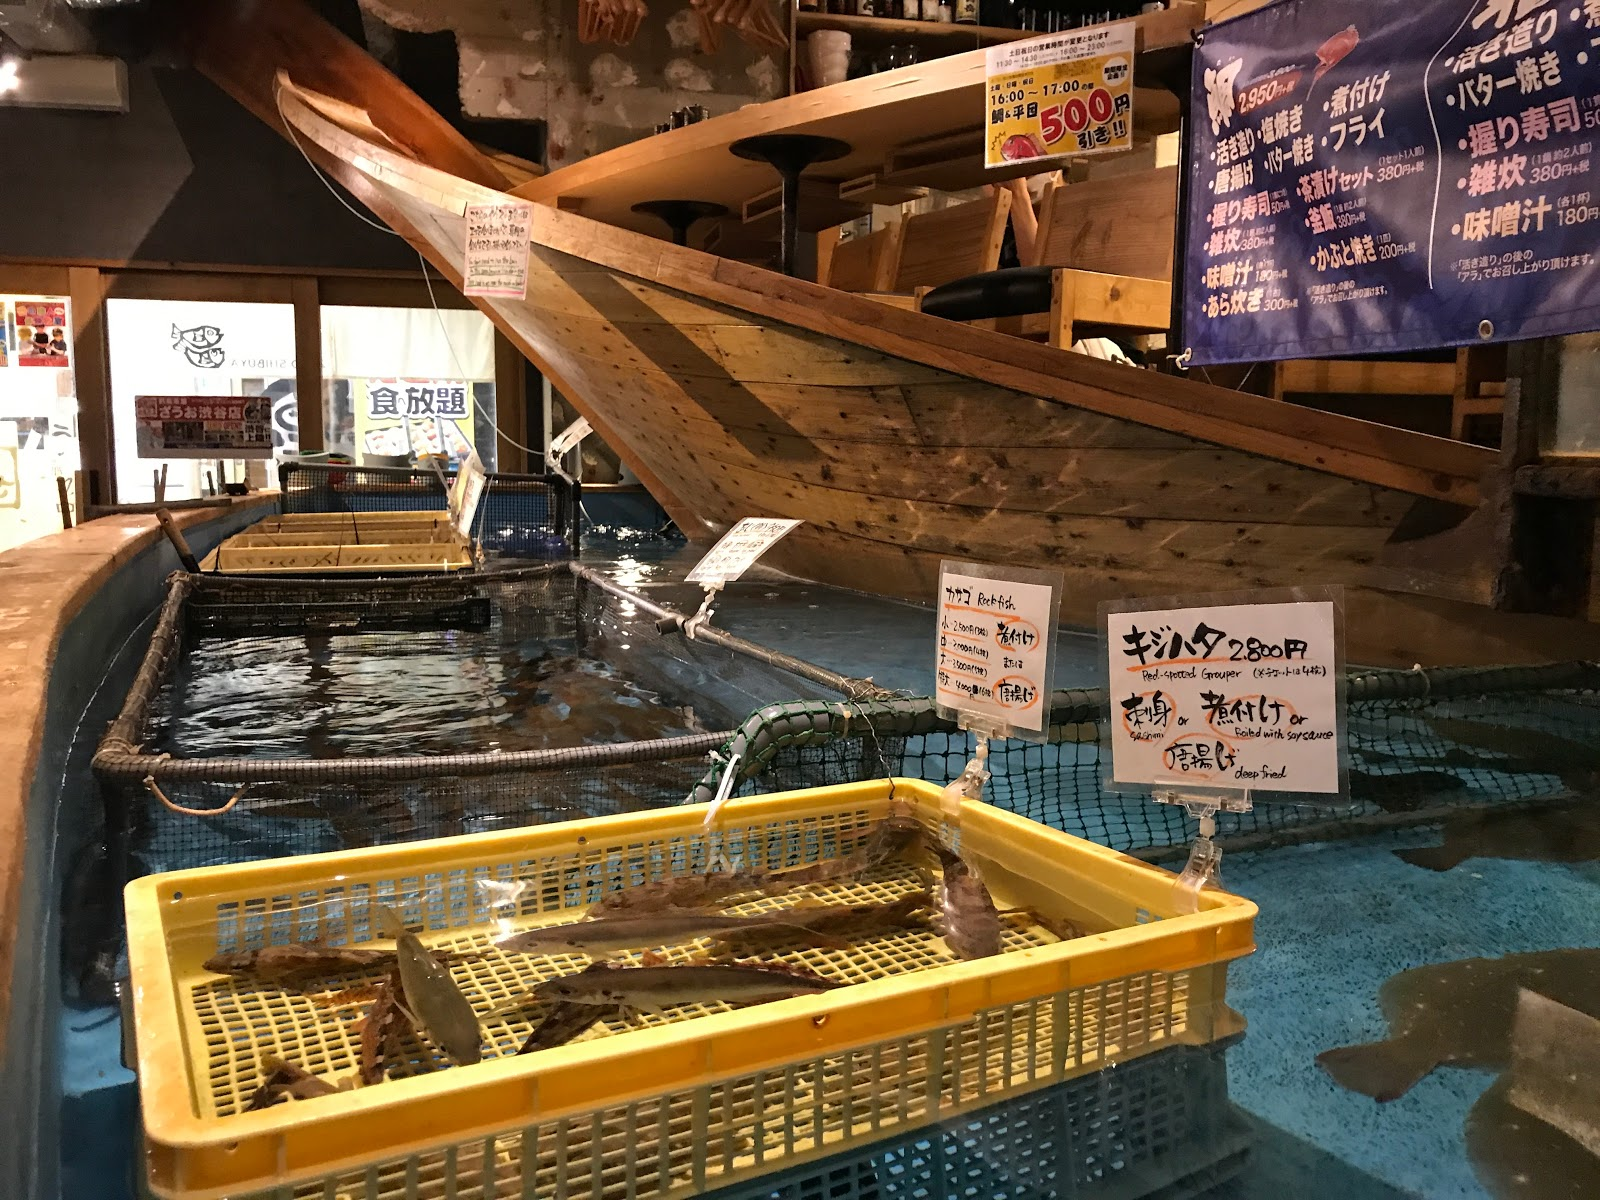 Above The Interior Of Restaurant Resembles A Fishing Boat At Sea